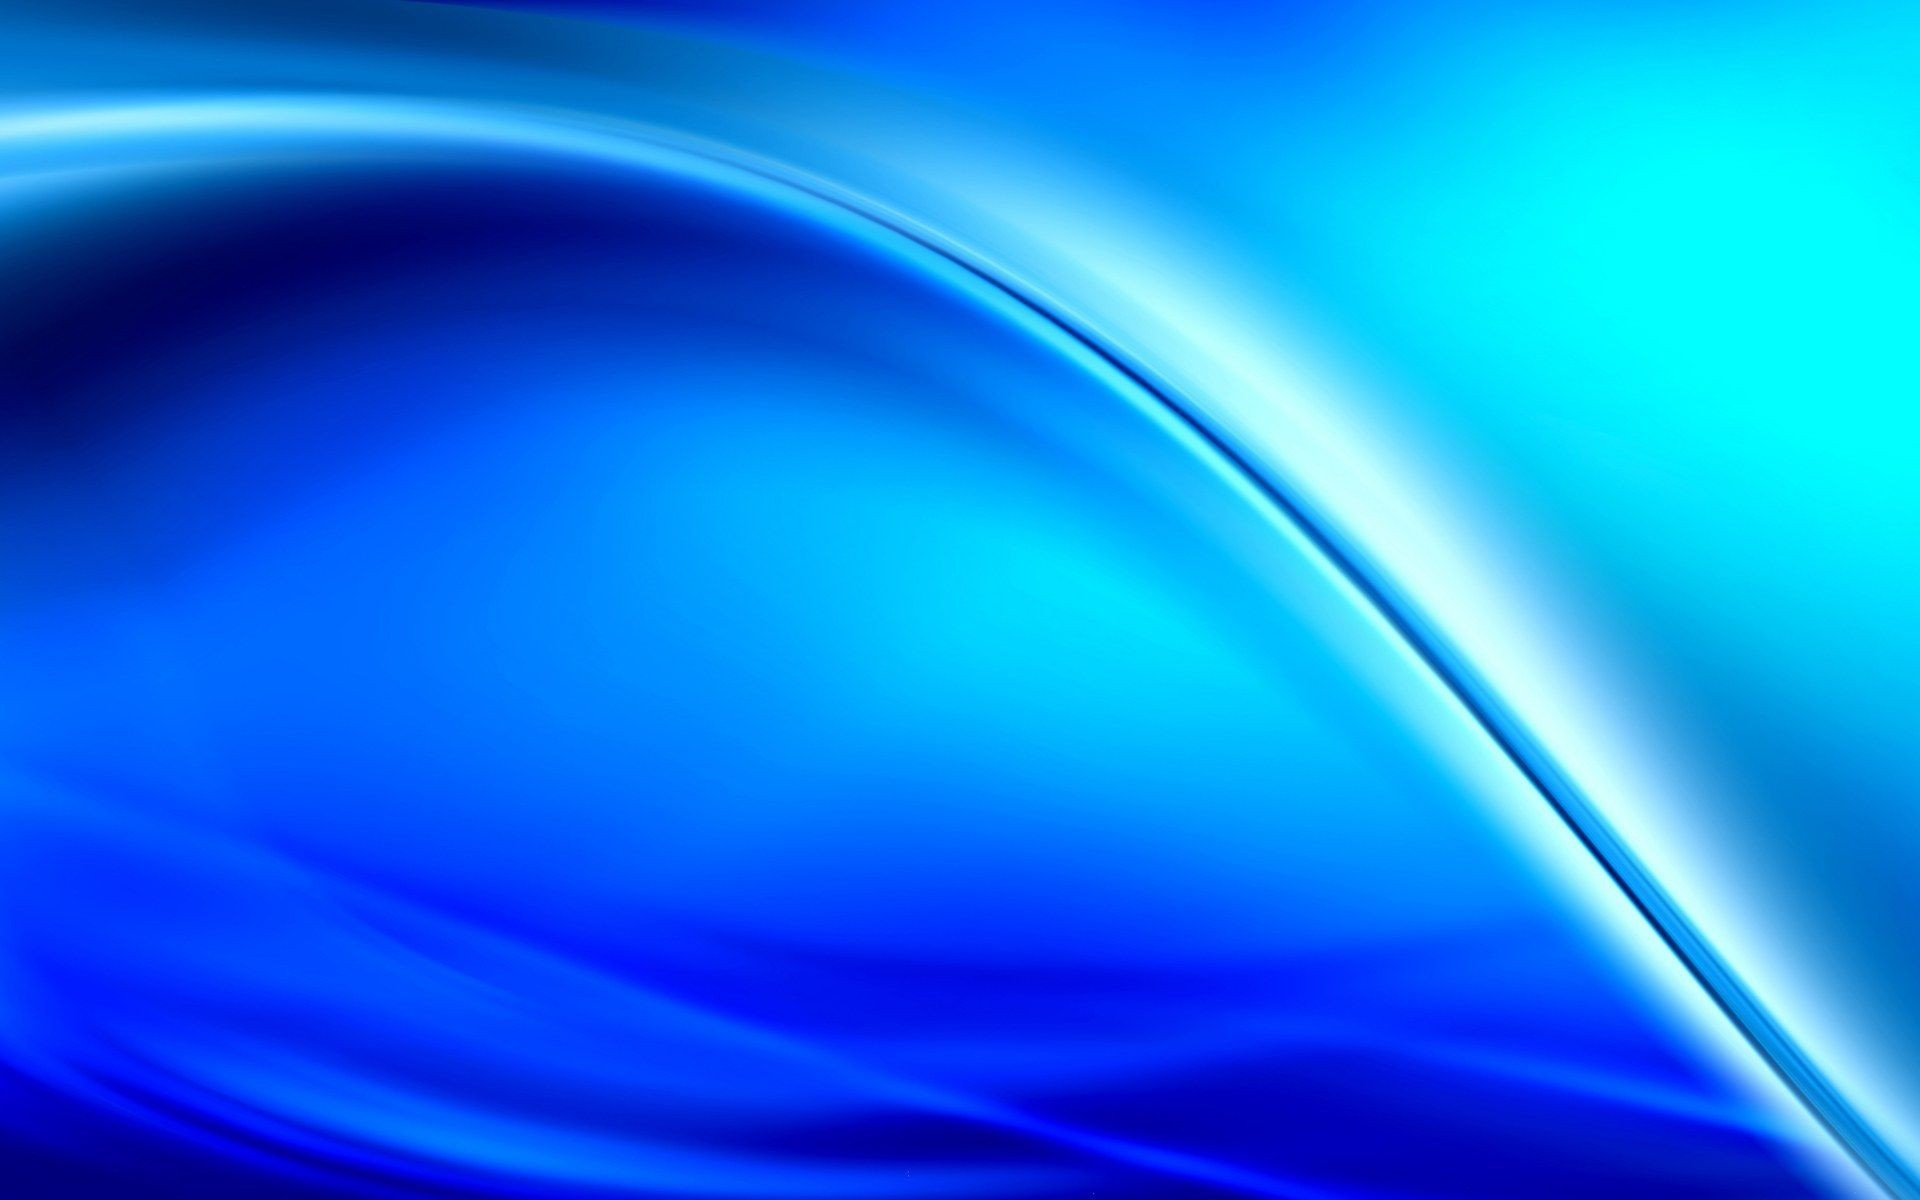 Blue Swirl Ipad Wallpaper Background And Theme: Blue Background HD ·① Download Free Stunning HD